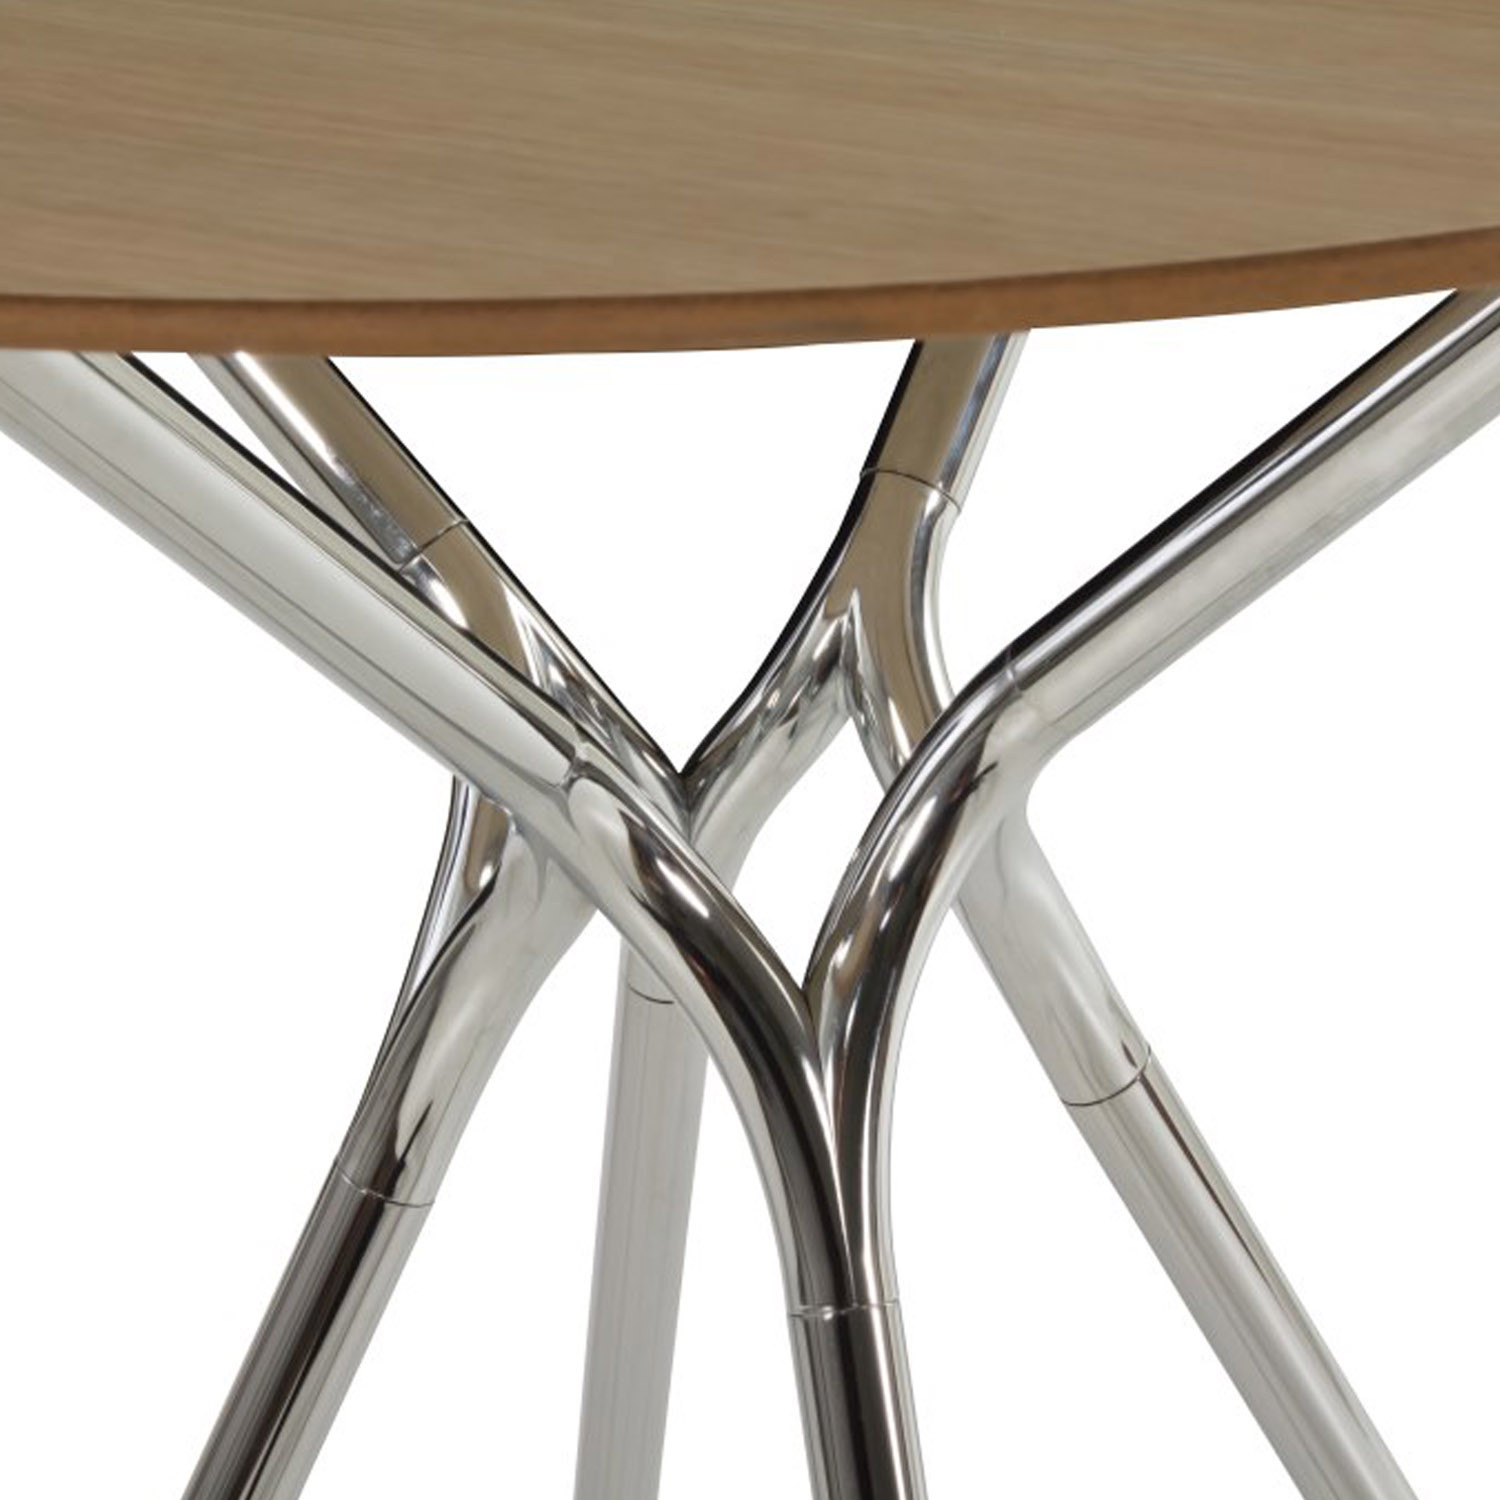 Cantana Tables with Patented Leg Design